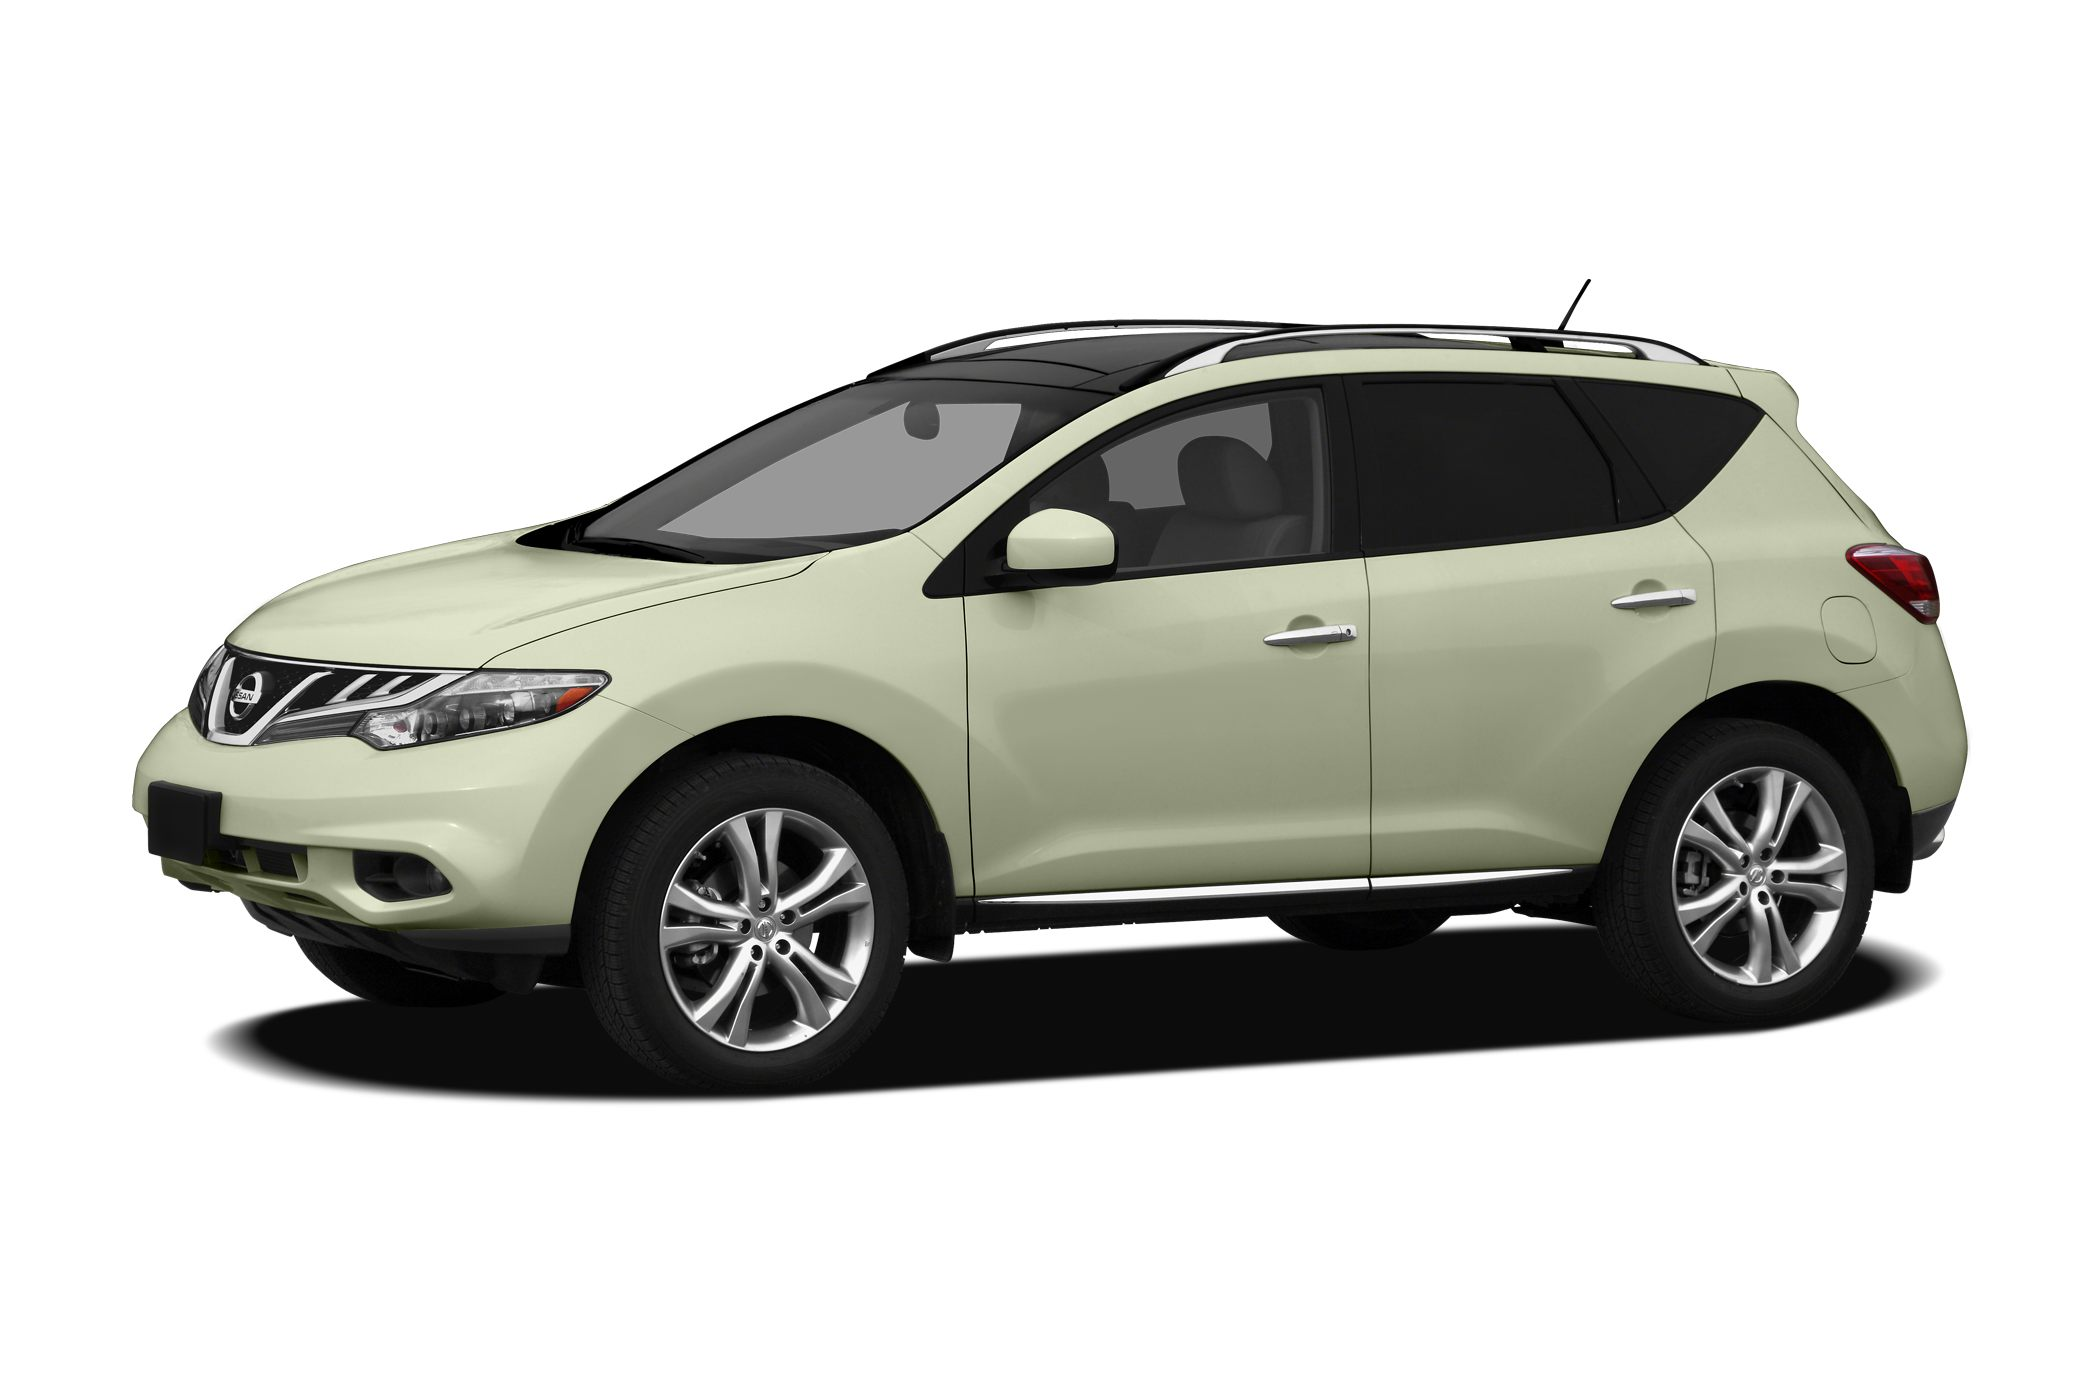 2011 Nissan Murano S SUV for sale in Quincy for $24,888 with 33,570 miles.